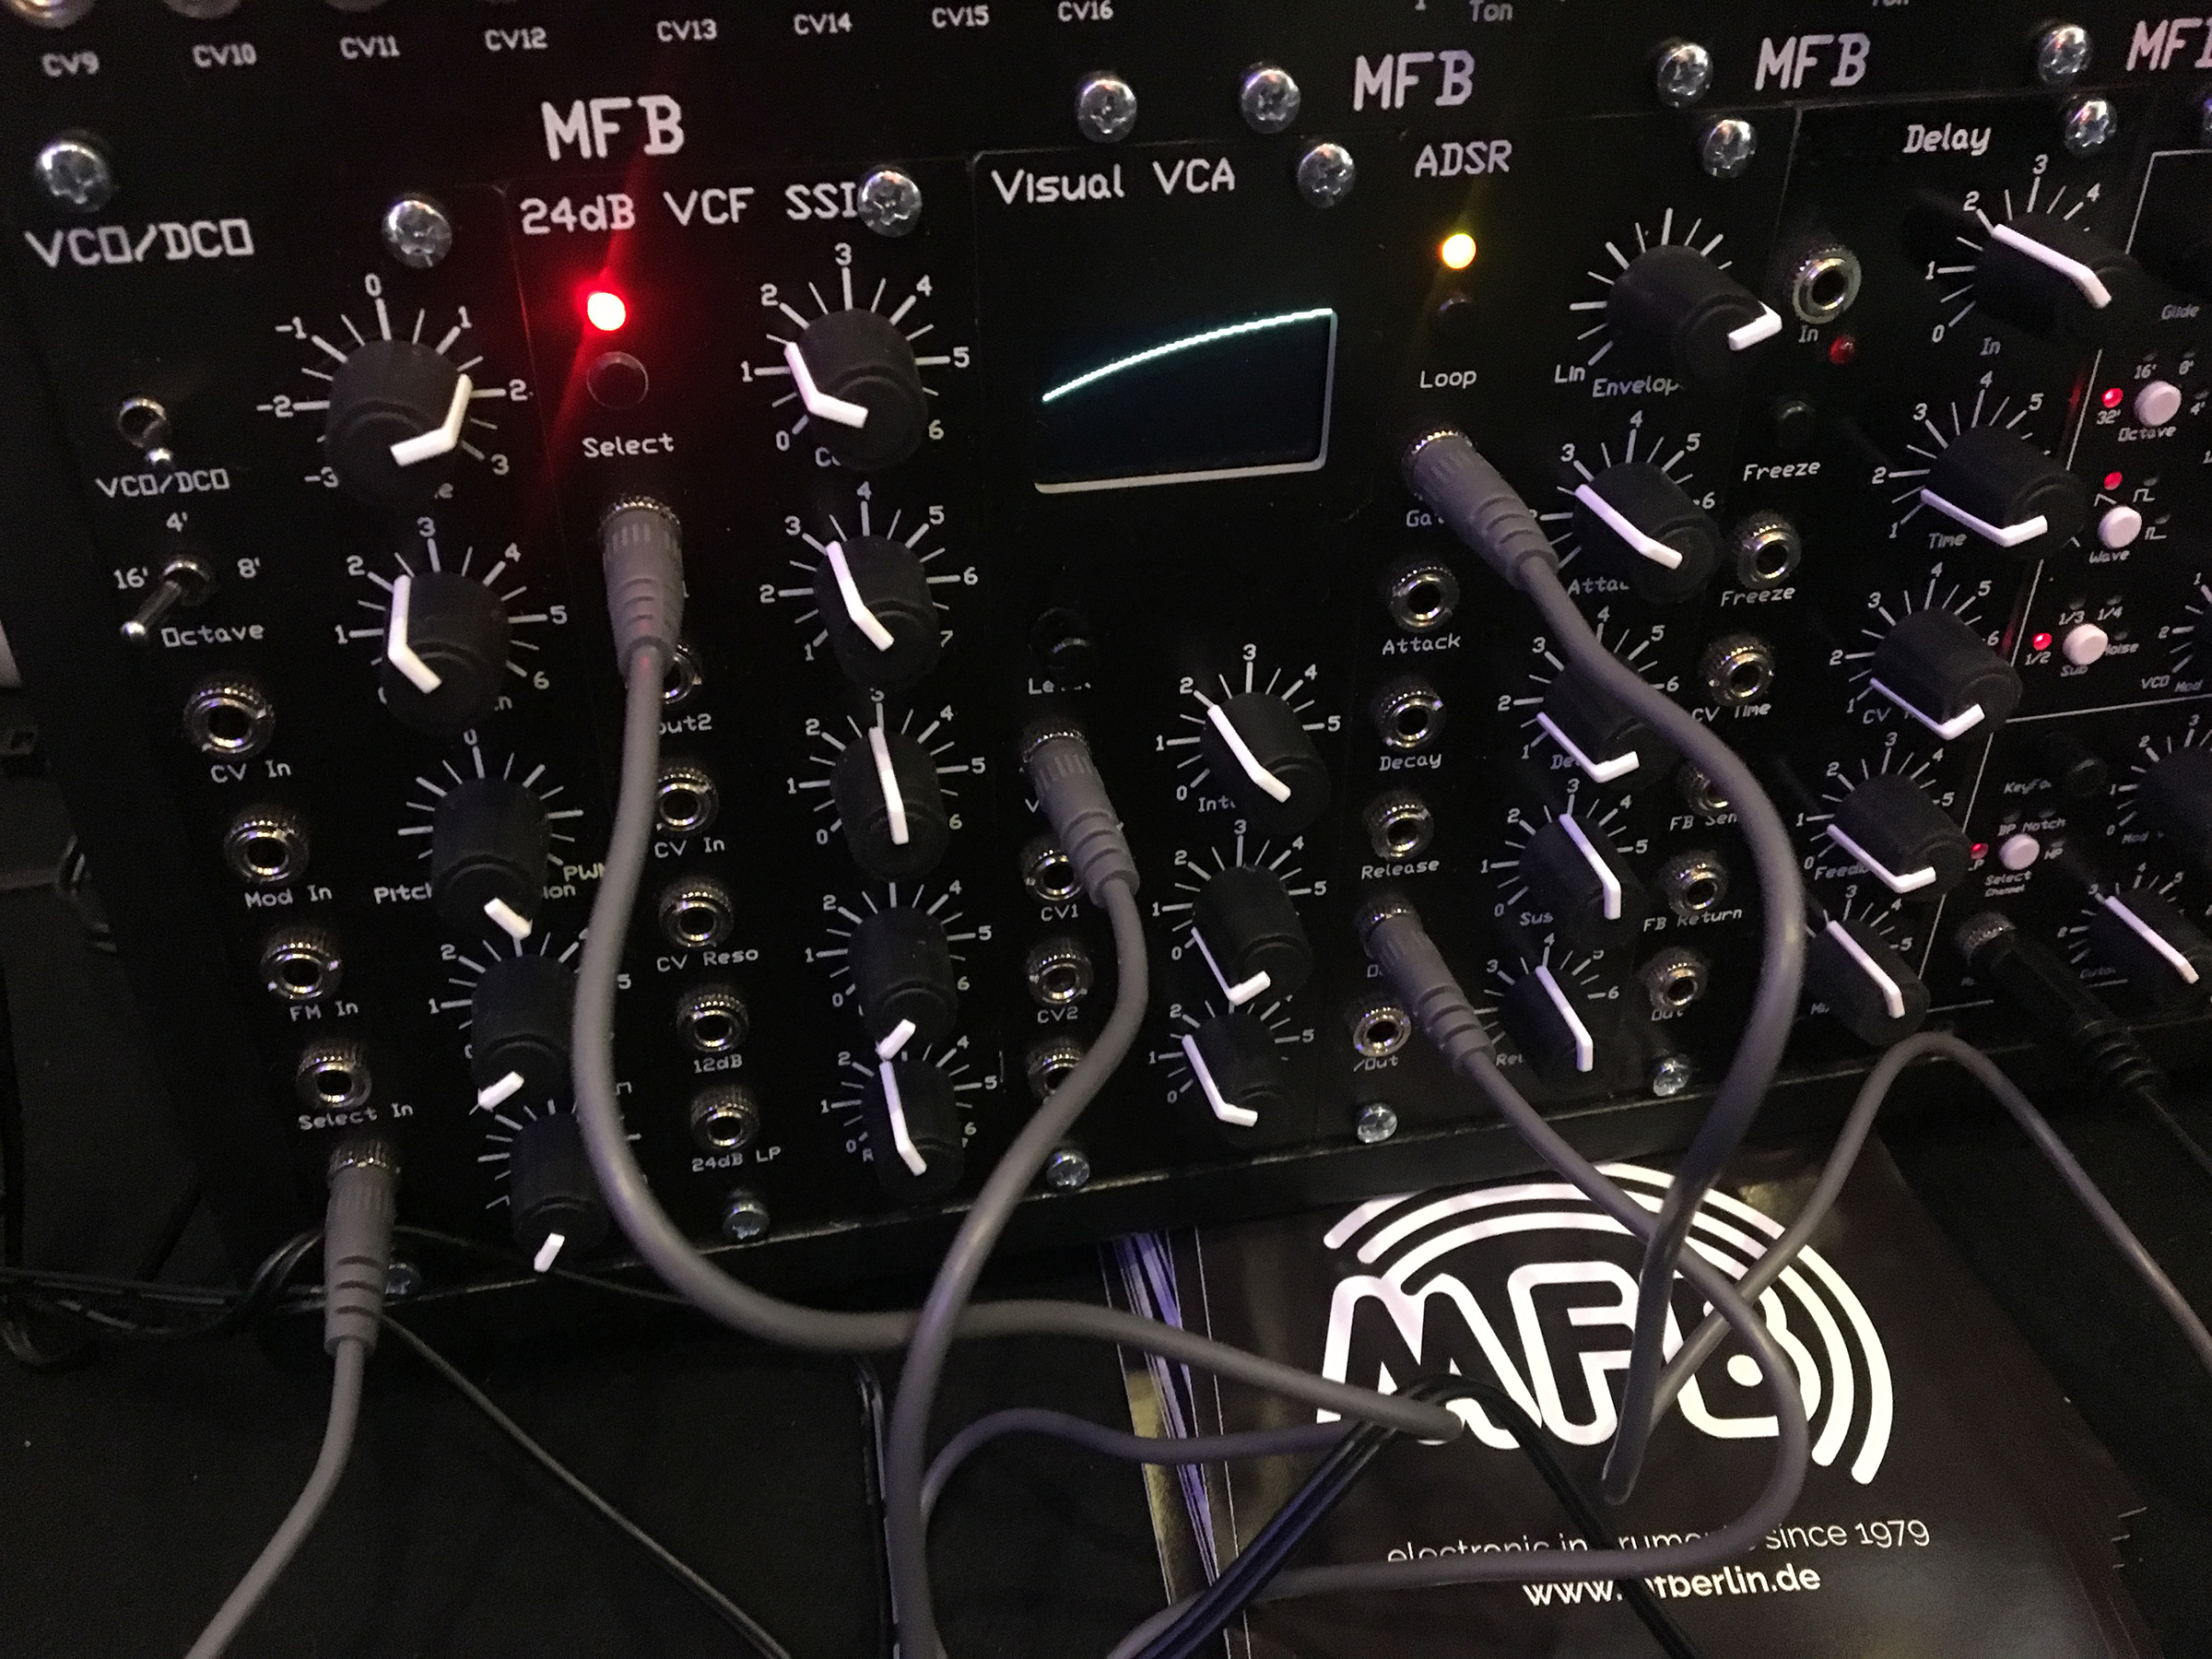 Mfb Have A Killer Live Drum Machine Synth In The Hybrid Tanzbr 2 Joe Funk Electric Electrician Frisco Tx But Wait Theres More Also New Modules Coming Too Heres Sneak Peak Of That